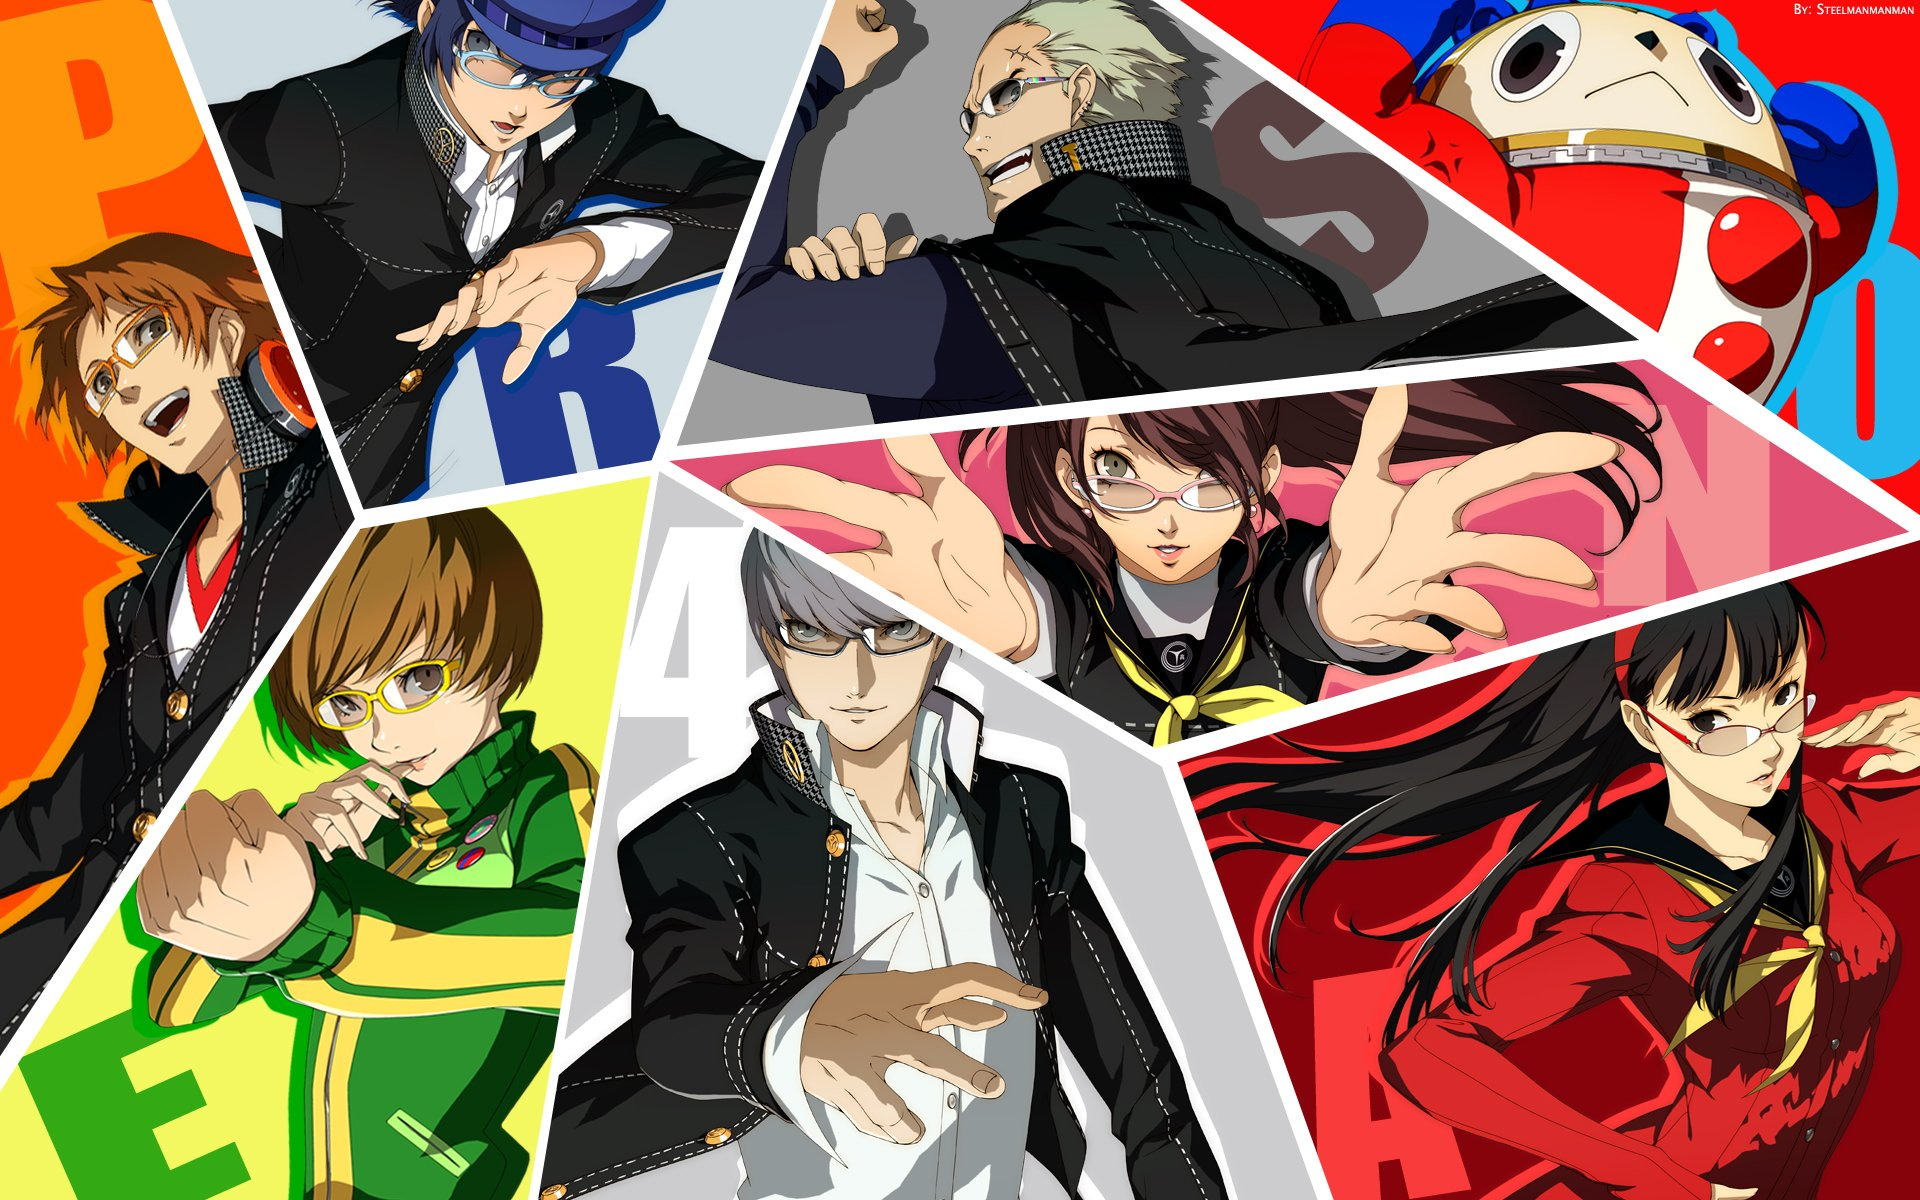 High Resolution Wallpaper | Persona 4 1920x1200 px